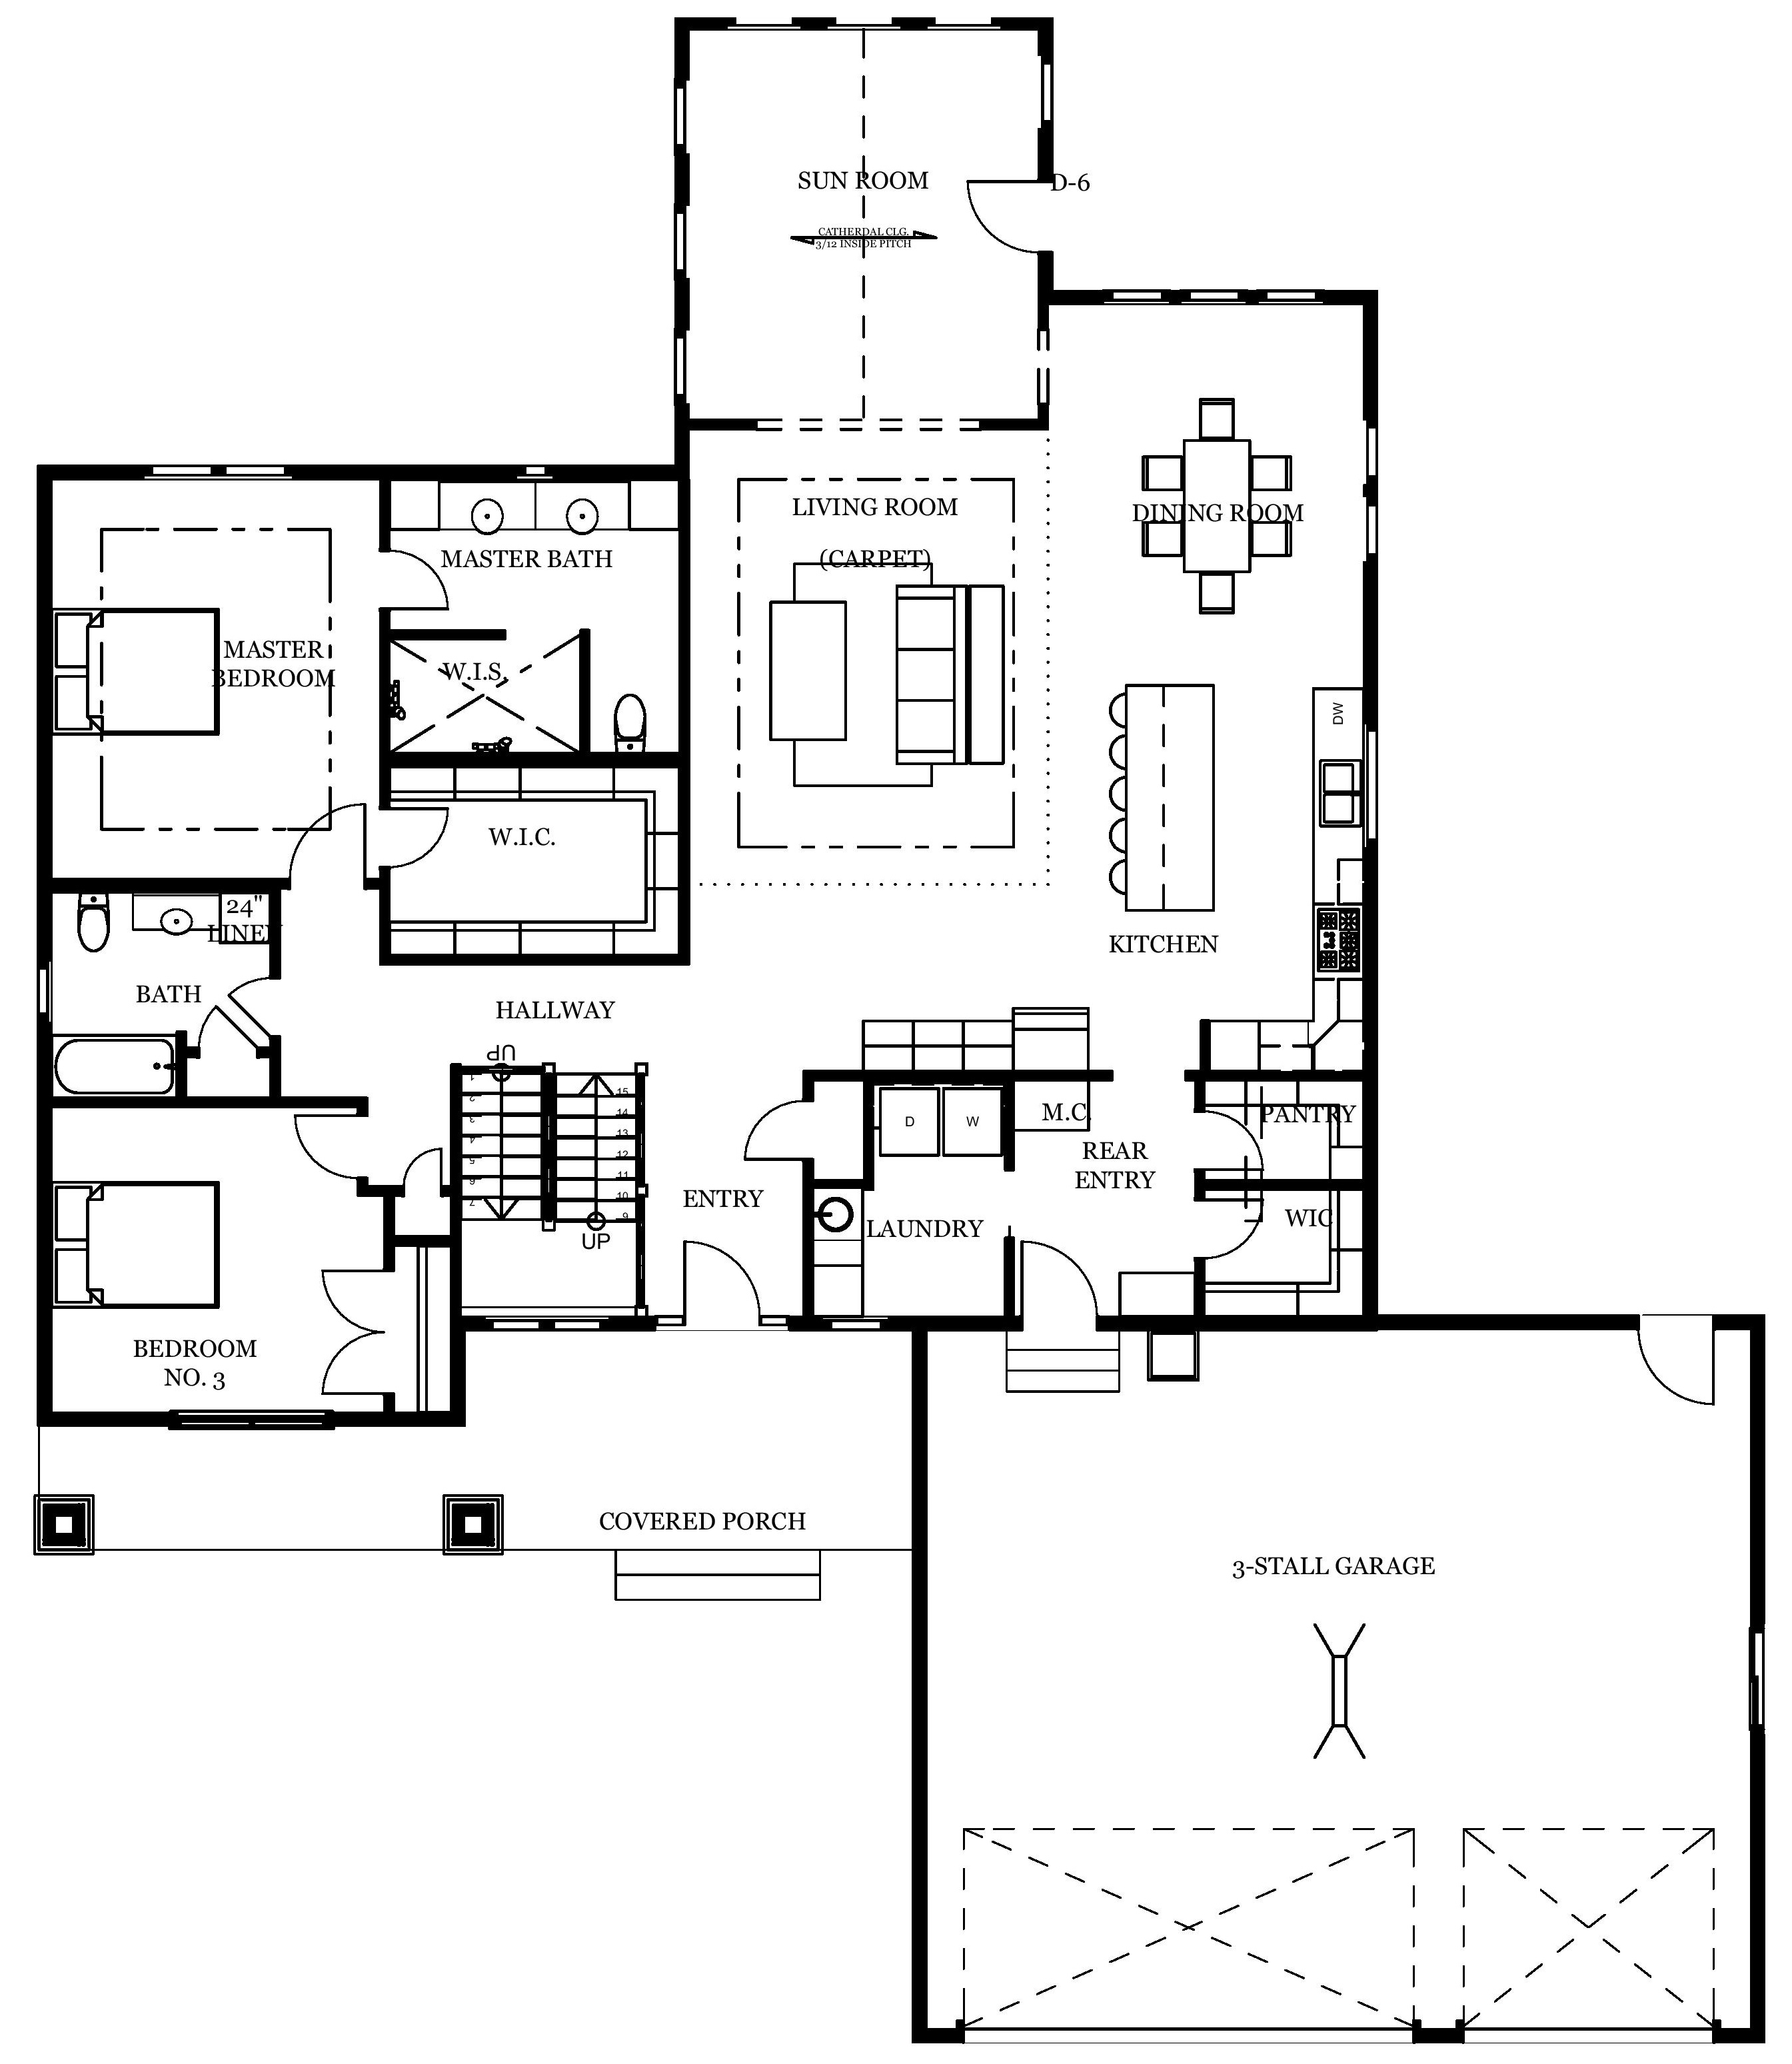 Rambler Floor Plans - an Homes on build your own floor plans, utah rambler house plans, rambler house plans with 3 car garage, open rambler floor plans, contemporary rambler house plans, master bath designs floor plans, country rambler house plans, rambler house extension plans, ranch rambler floor plans, great rambler floor plans, craftsman style rambler house plans, rambler house plans with basements, 3-bedroom rambler house plans, patio home floor plans, small rambler house plans, best open floor plans, custom rambler floor plans, rambler house plans with angled garage, rambler home,